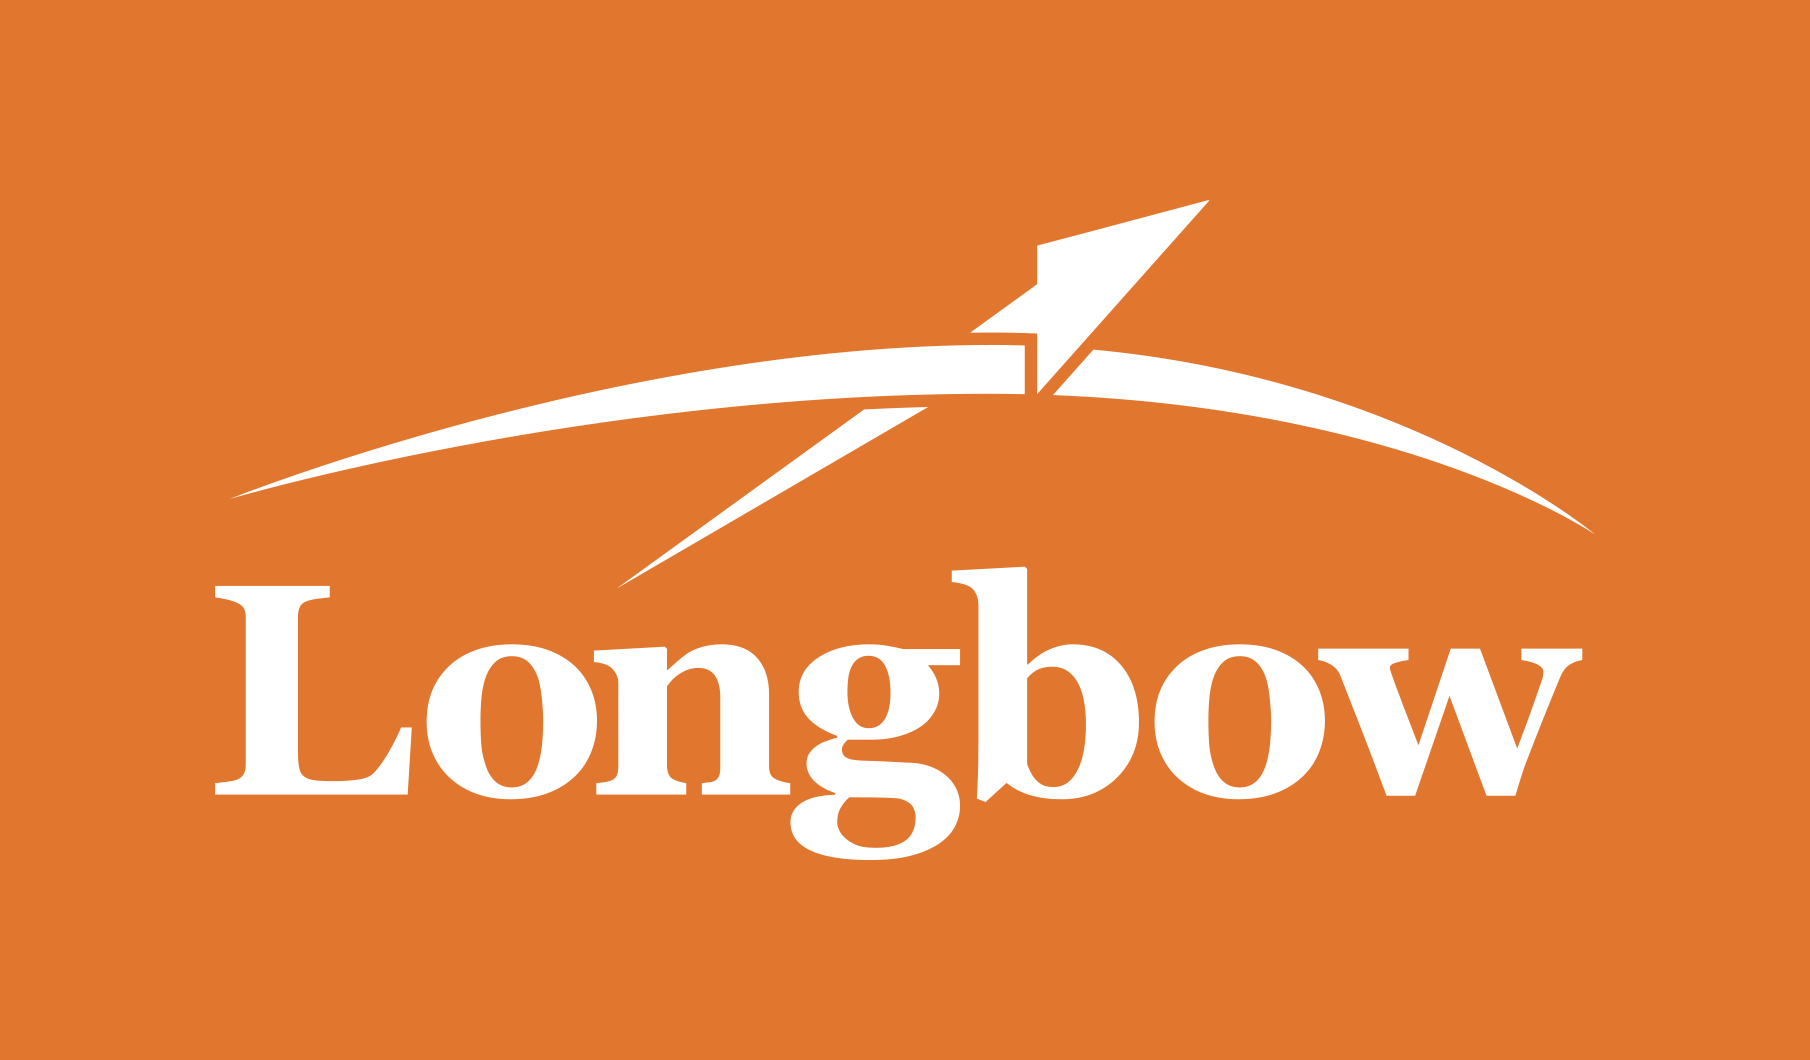 Longbow is Targeted Marketing